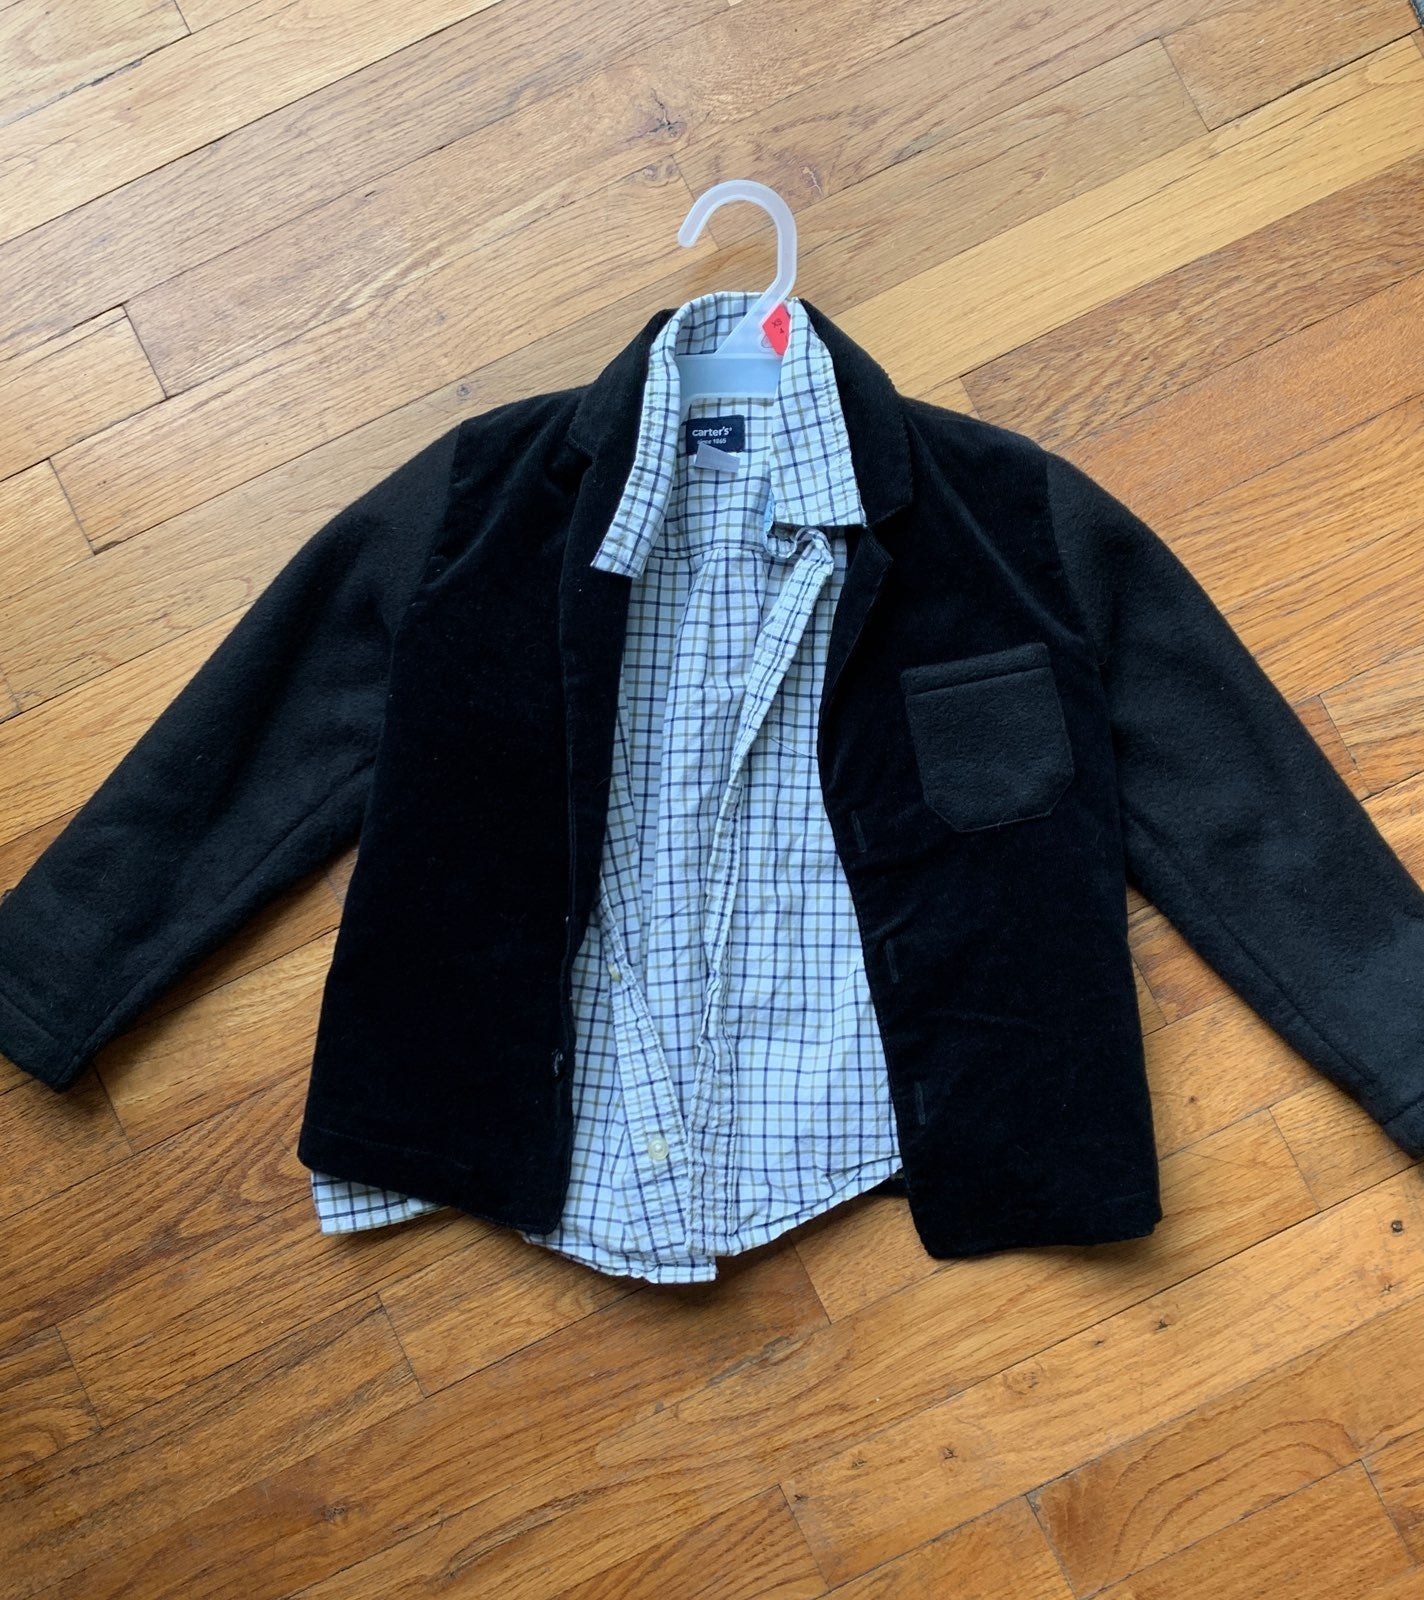 Blazer and dress top for boys